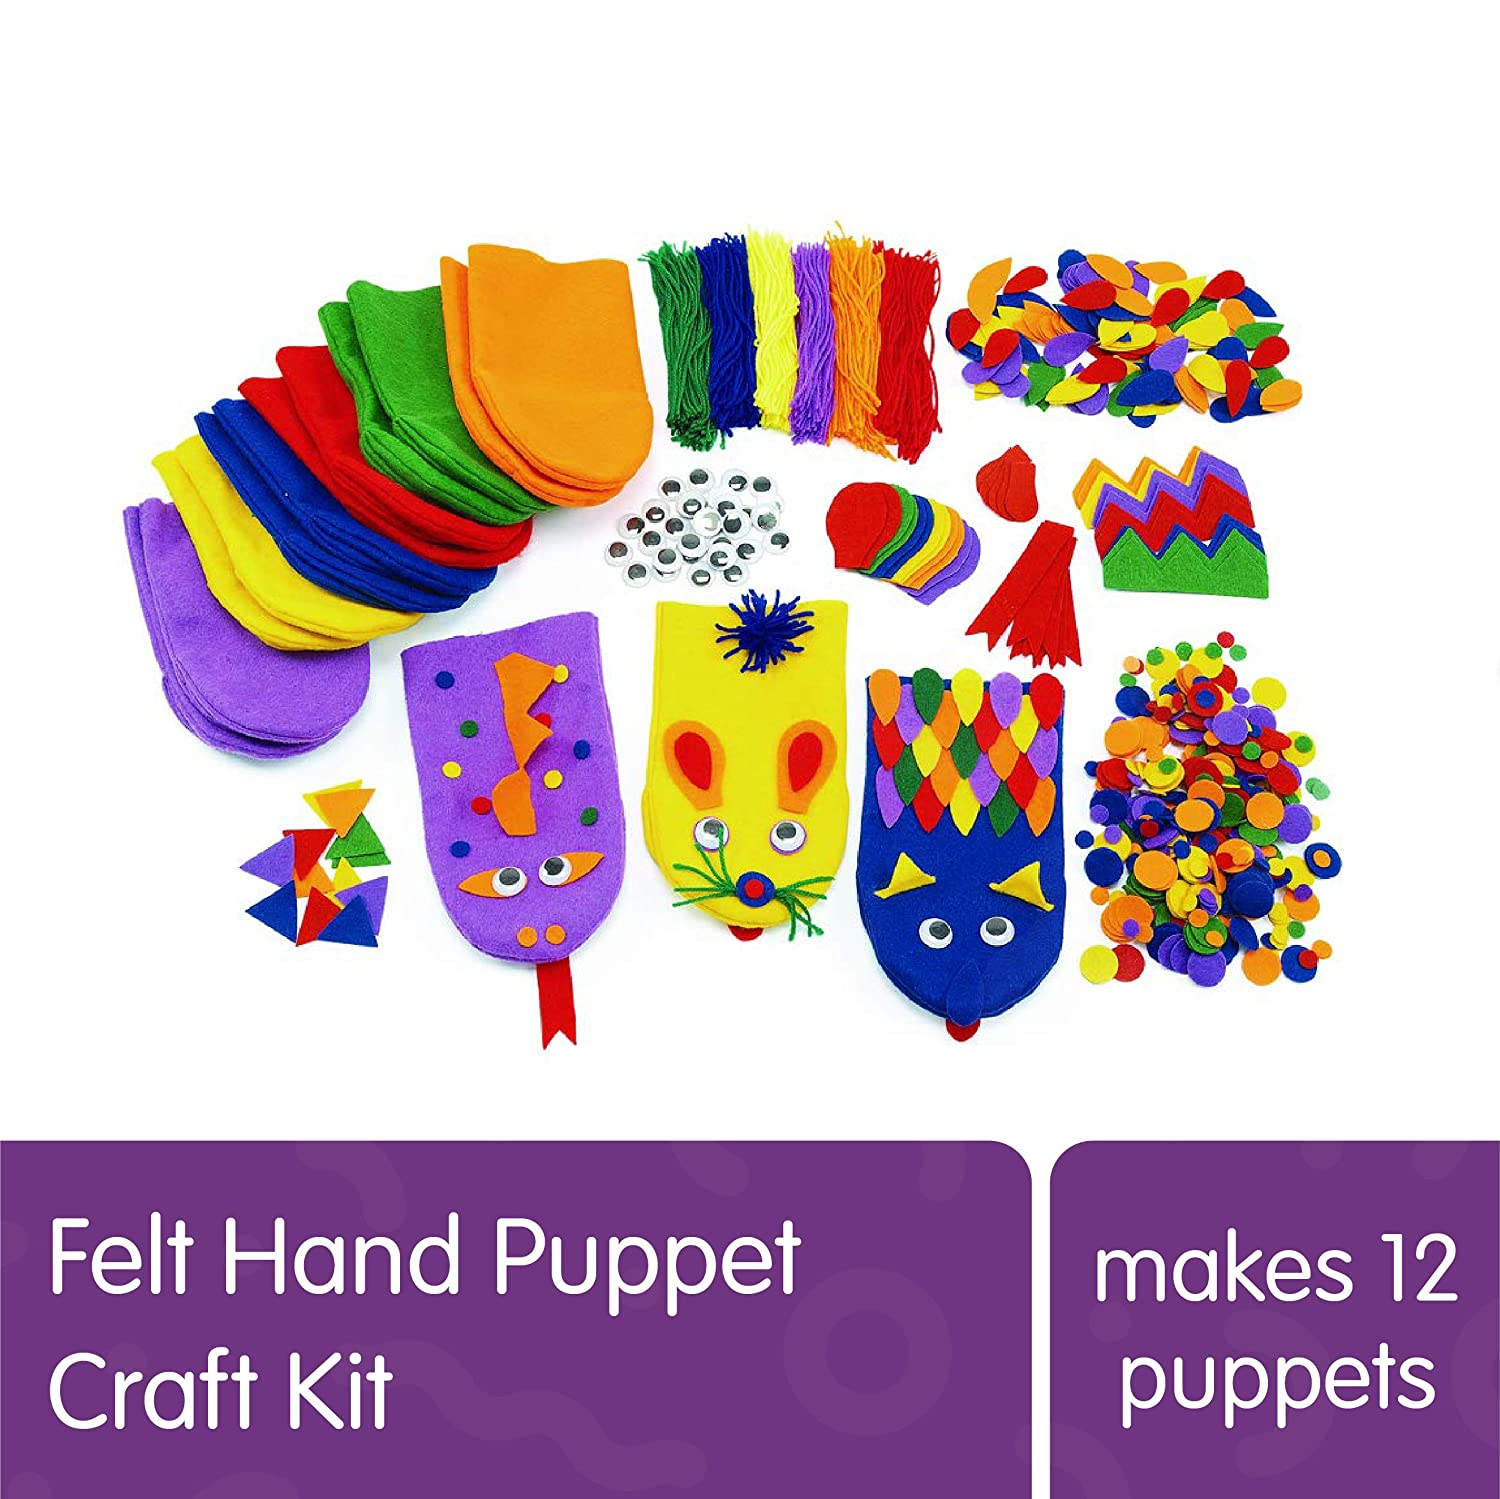 B01HZMQ5HC Colorations Felt Imaginary Hand Puppet Craft Kit for Kids, Makes 12 Puppets, Googly Eyes, Dragons, Dramatic Play, Imagination, Creatures, Role Play, Learning, Creativity 81H5tQw60nL